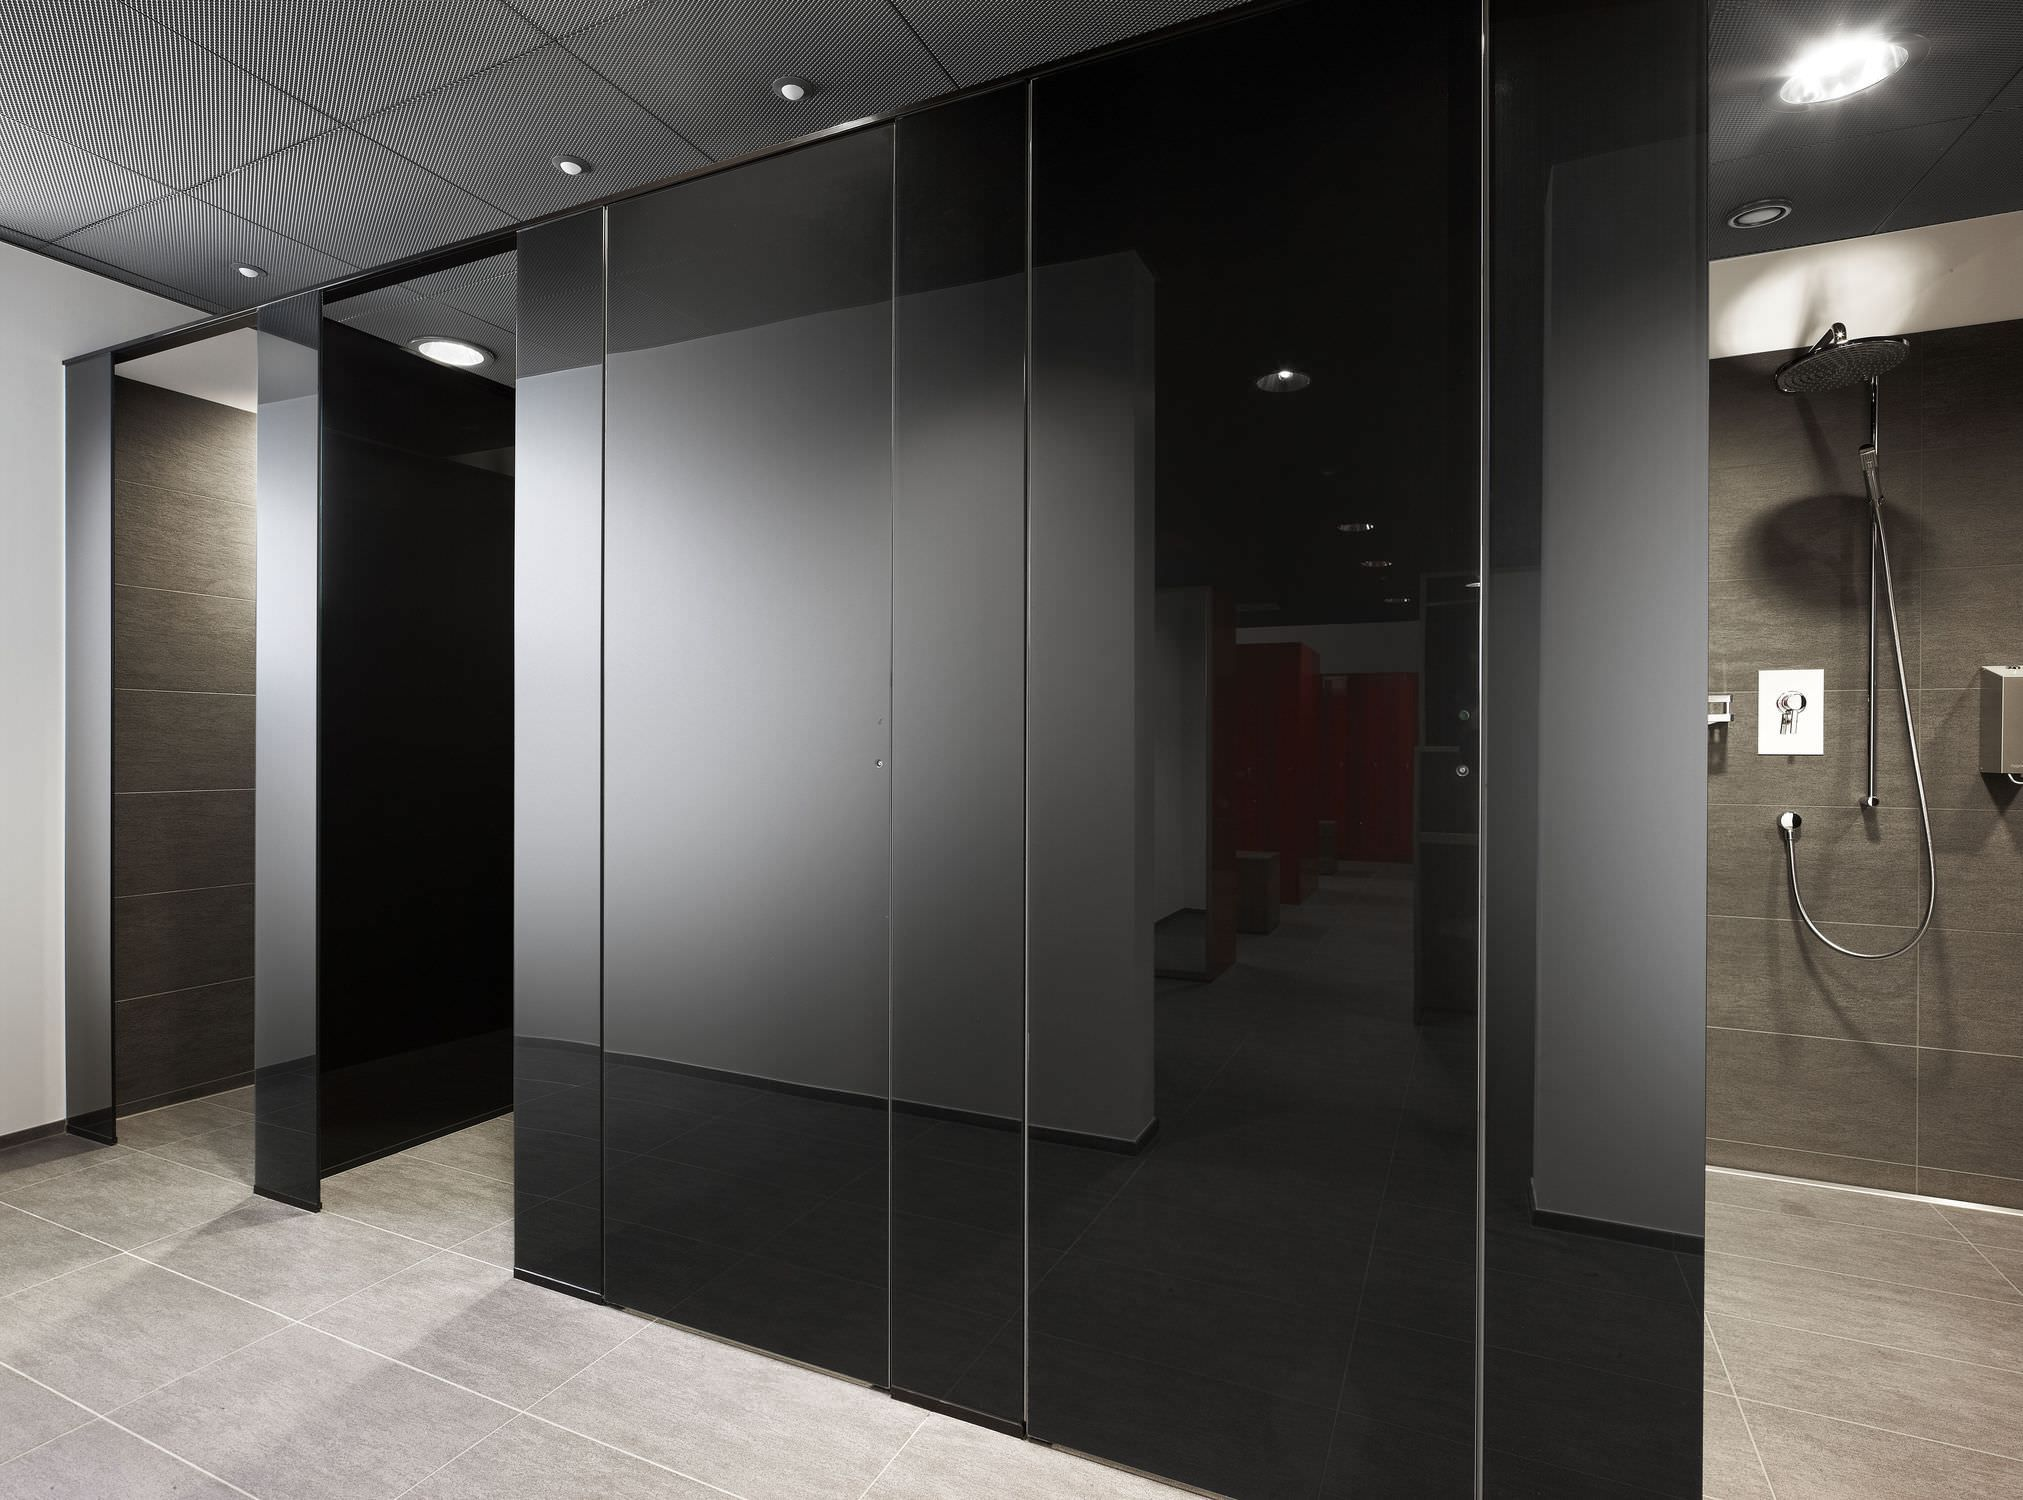 Partitions Designs Toilet Cubicle Hotel Google Search Bathing Pinterest